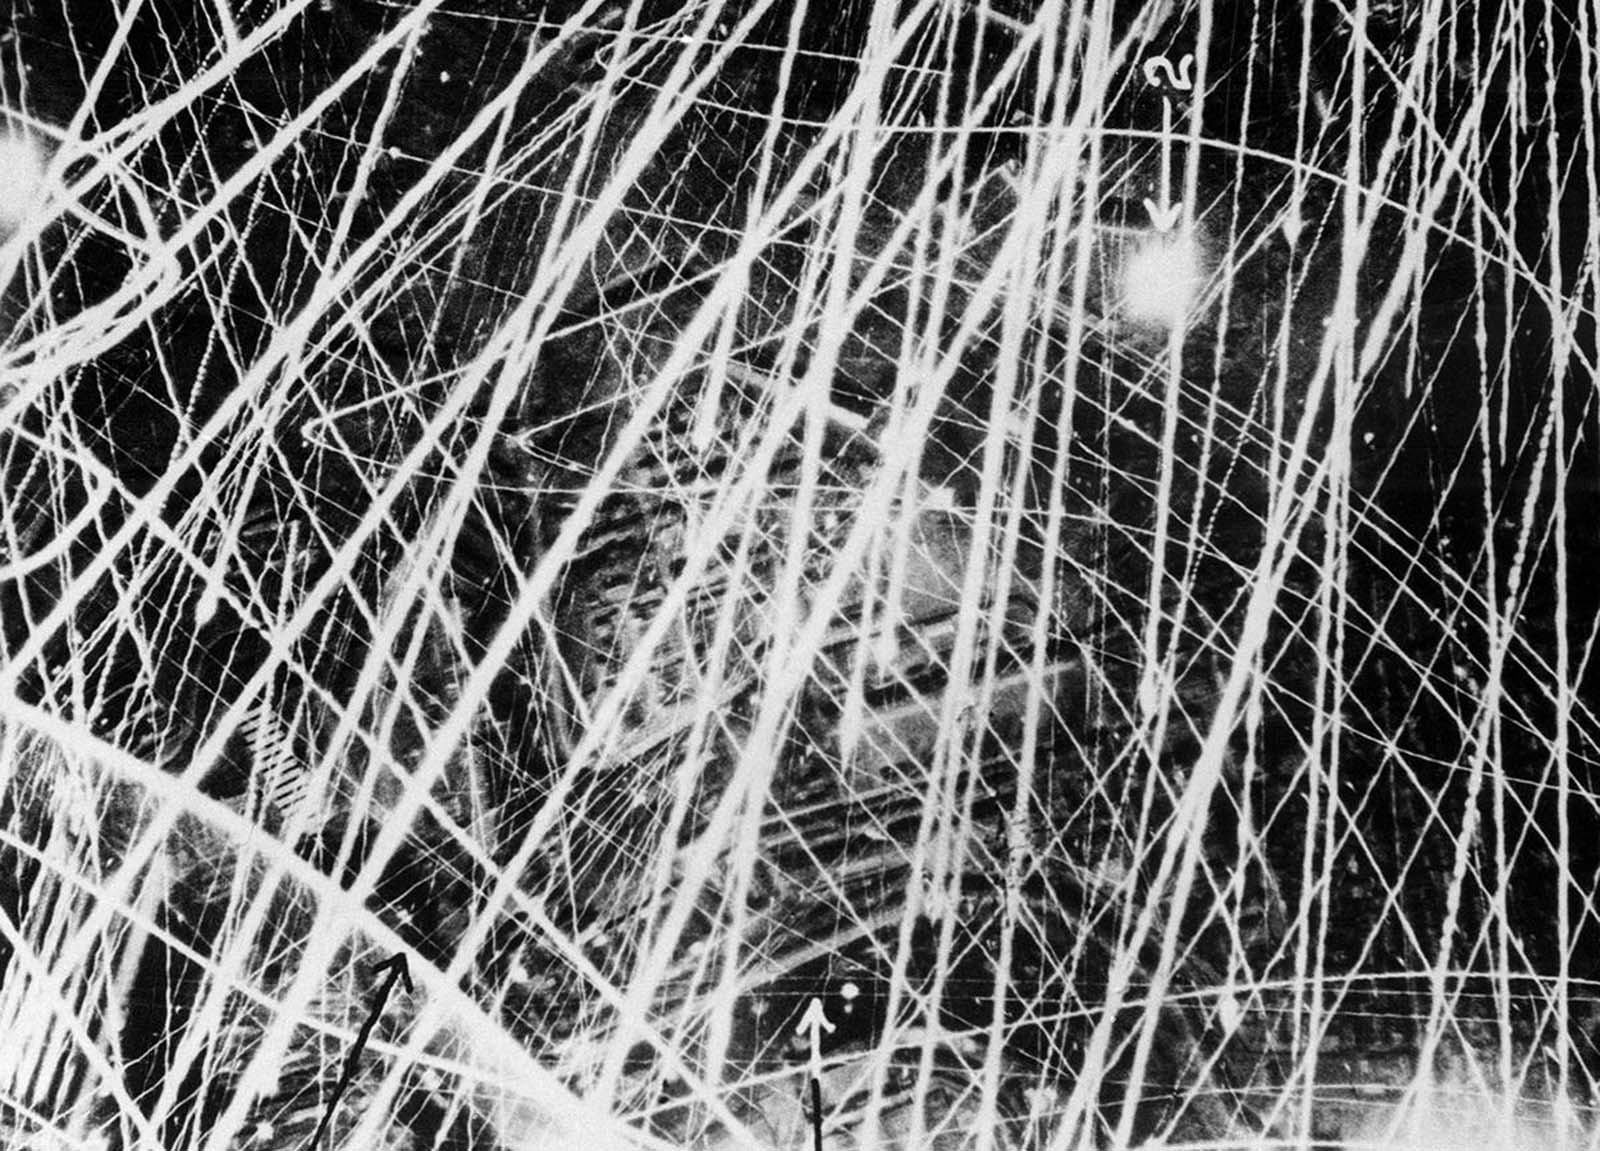 This photograph was taken on January 31, 1941, during a nigthtime air raid carried out by the Royal Air Force above Brest, France. It gives a graphic impression of what flak and anti-aircraft fire looks like from the air. In the period of three to four seconds during which the shutter remained open, the camera clearly captured the furious gunfire. The fine lines of light show the paths of tracer shells, and the broader lines are those of heavier guns. Factories and other buildings can be seen below.